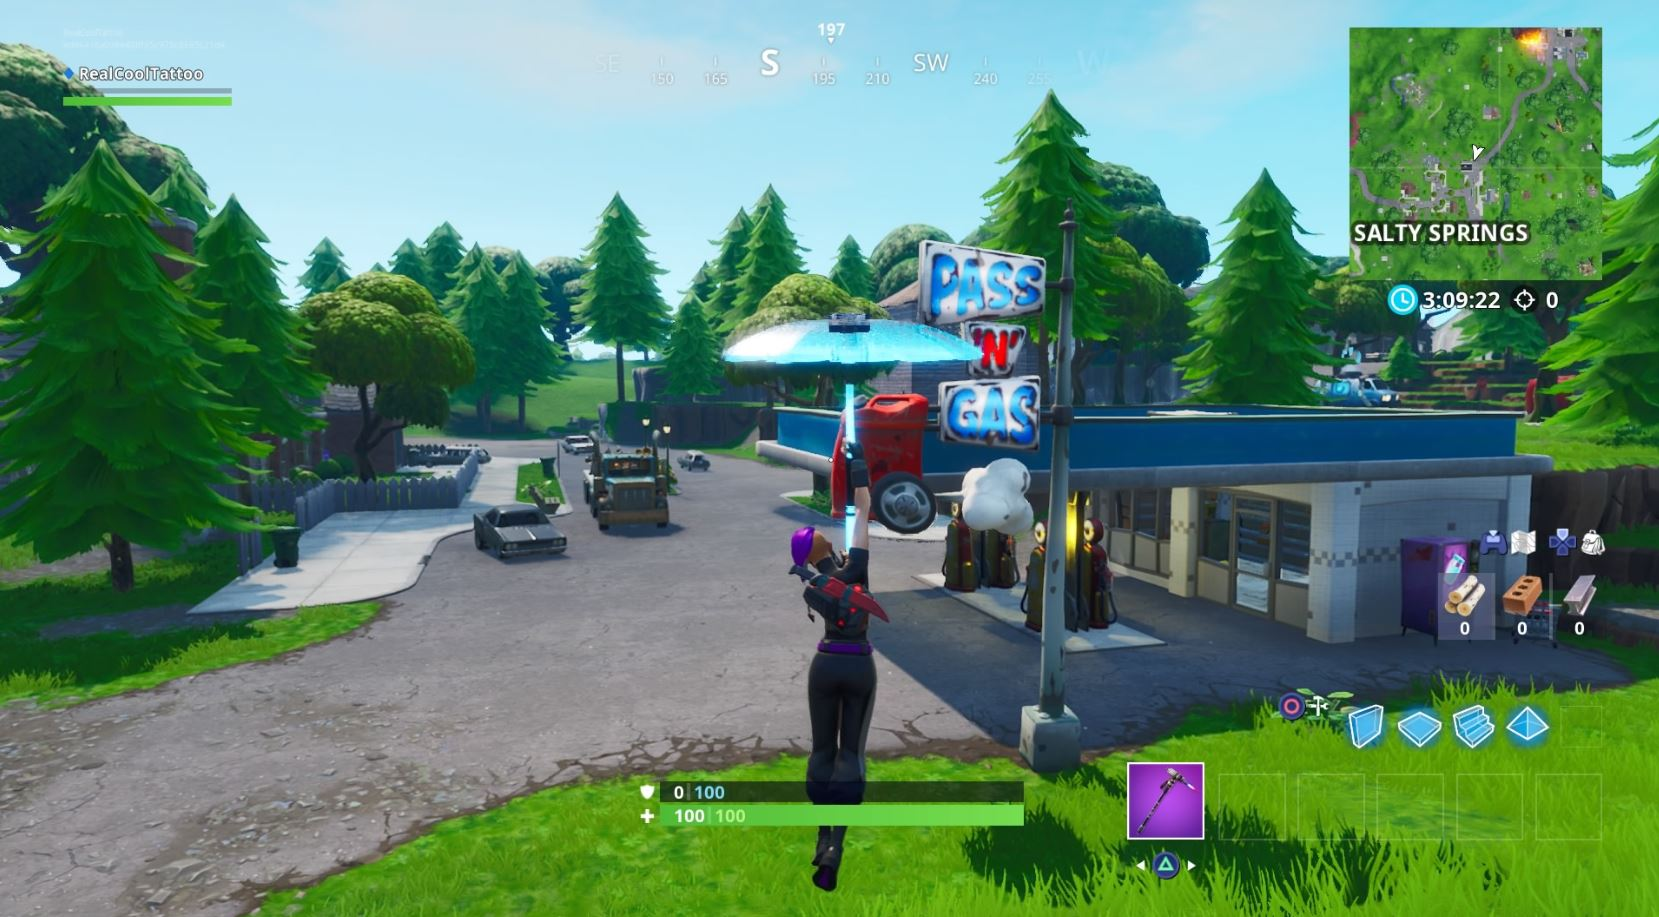 Fortnite: Gas Station locations - VG247